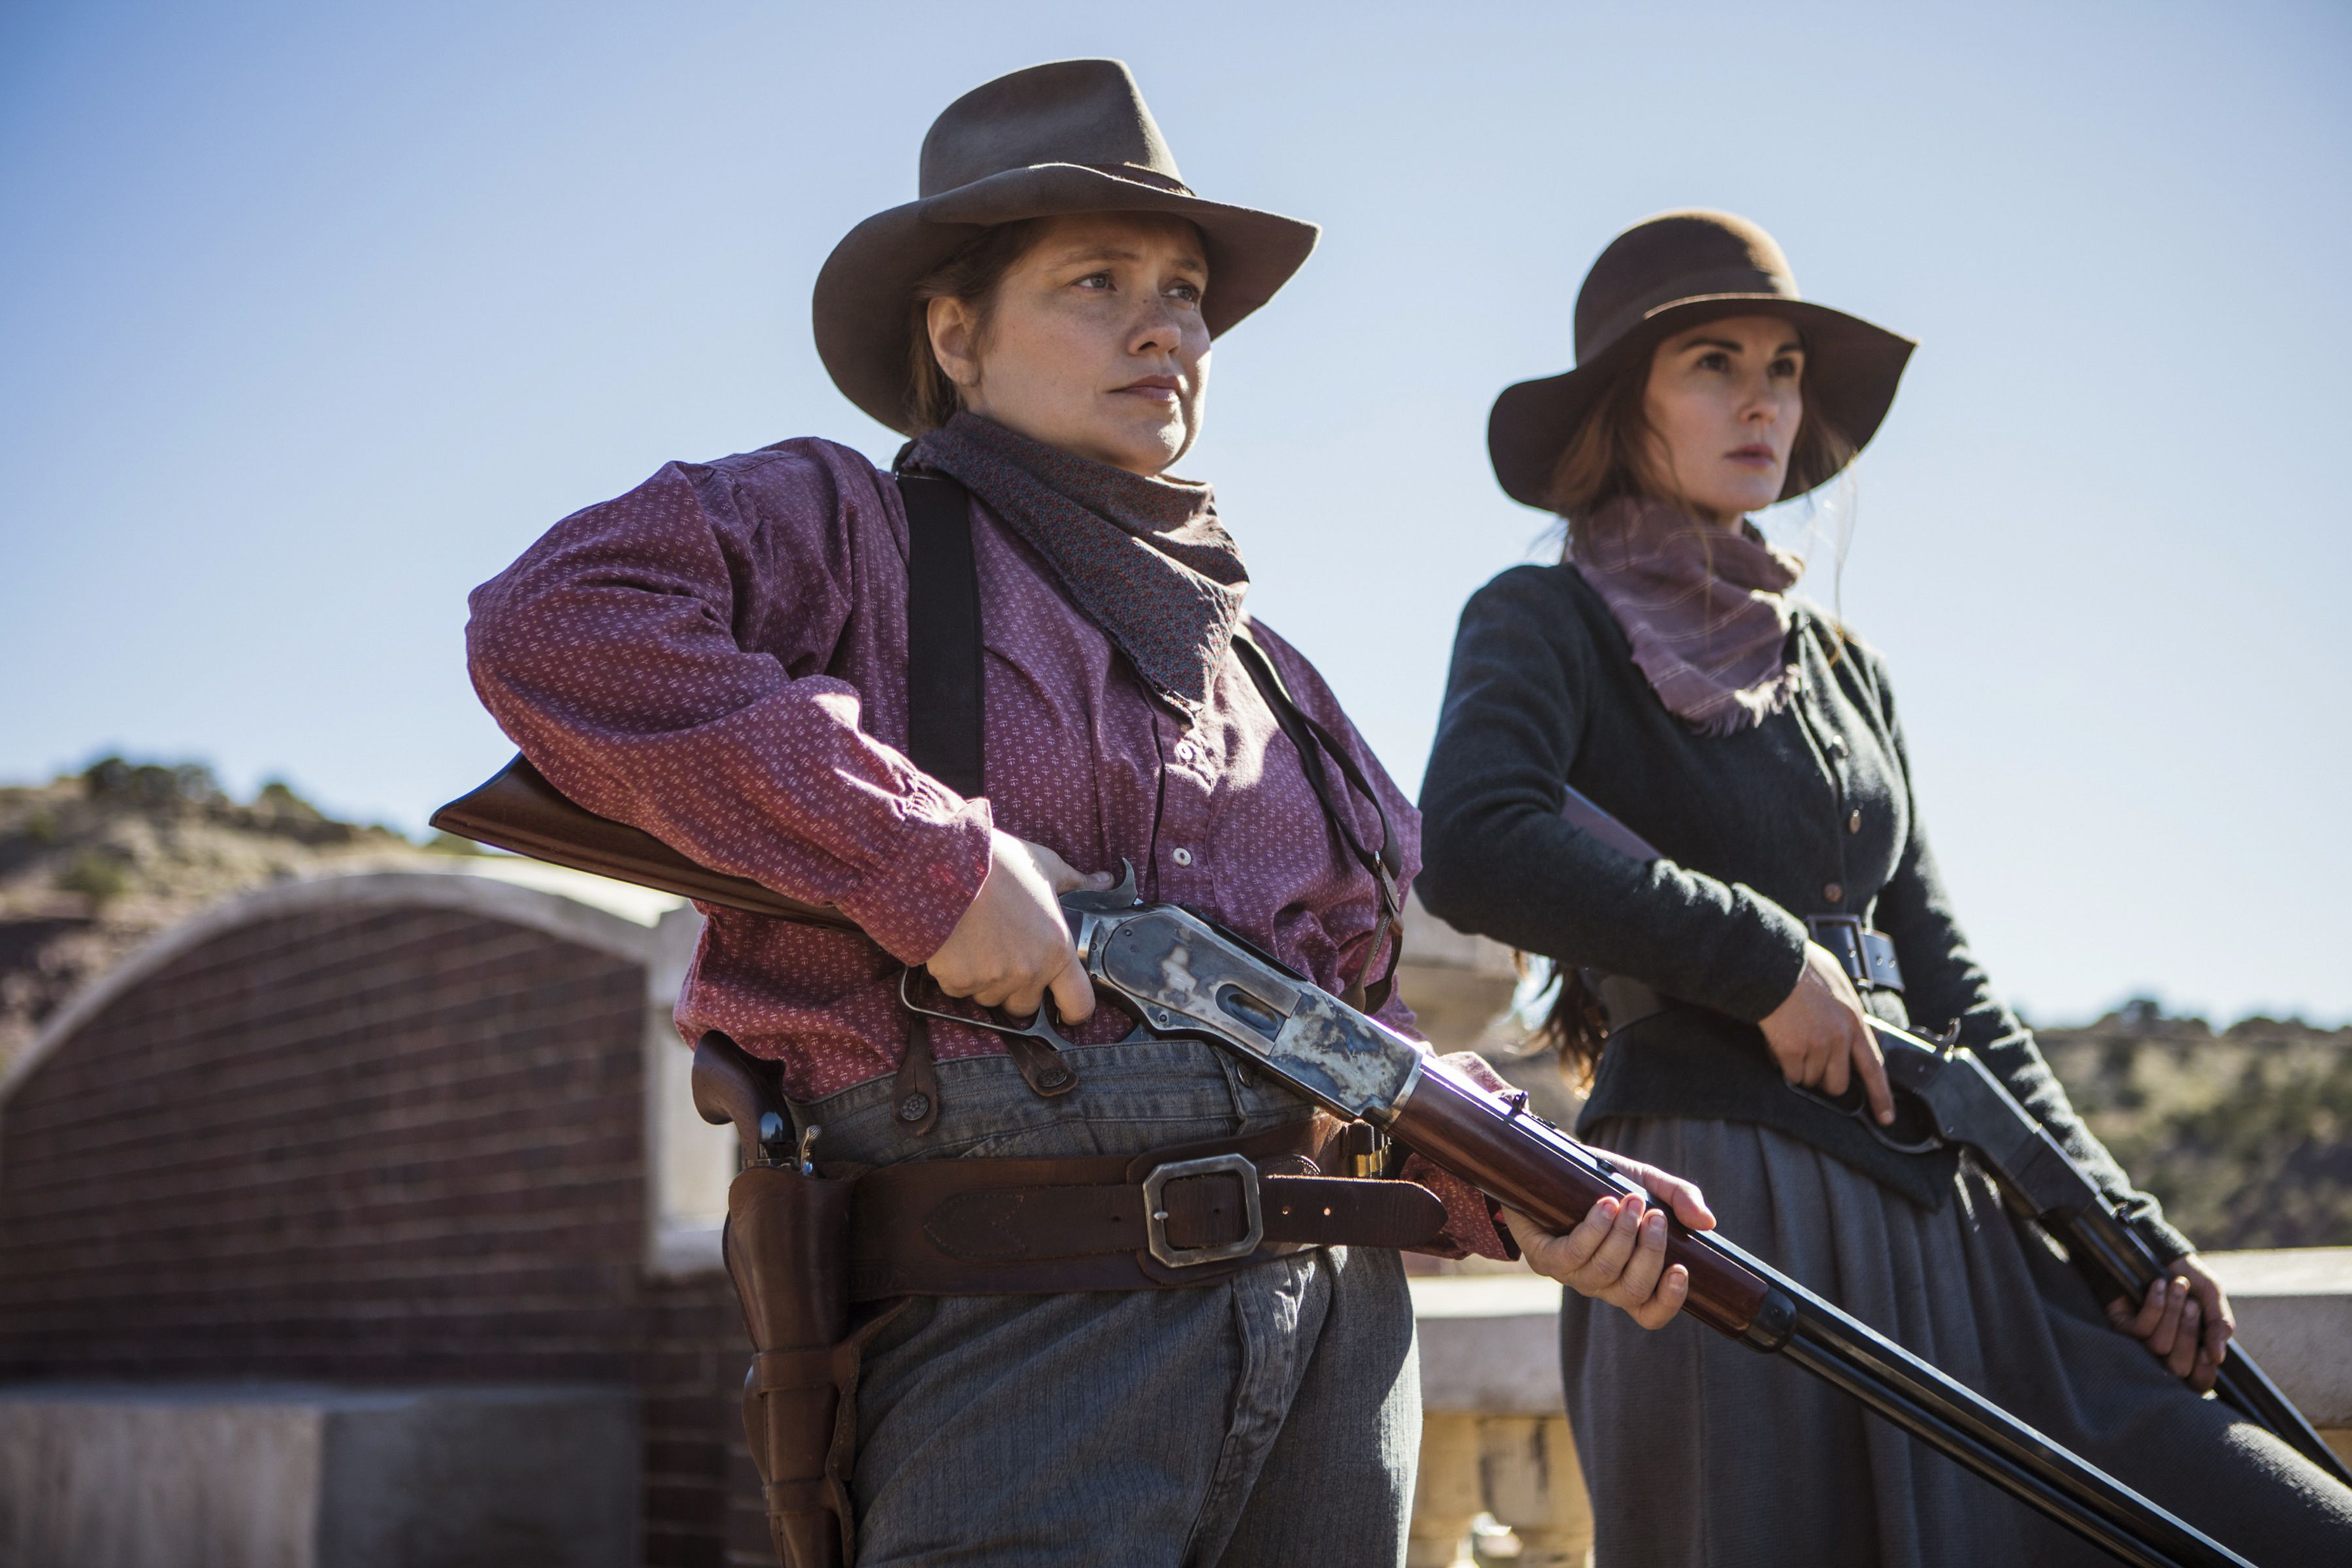 'Godless' Review An Excellent Cast & Stunning Imagery